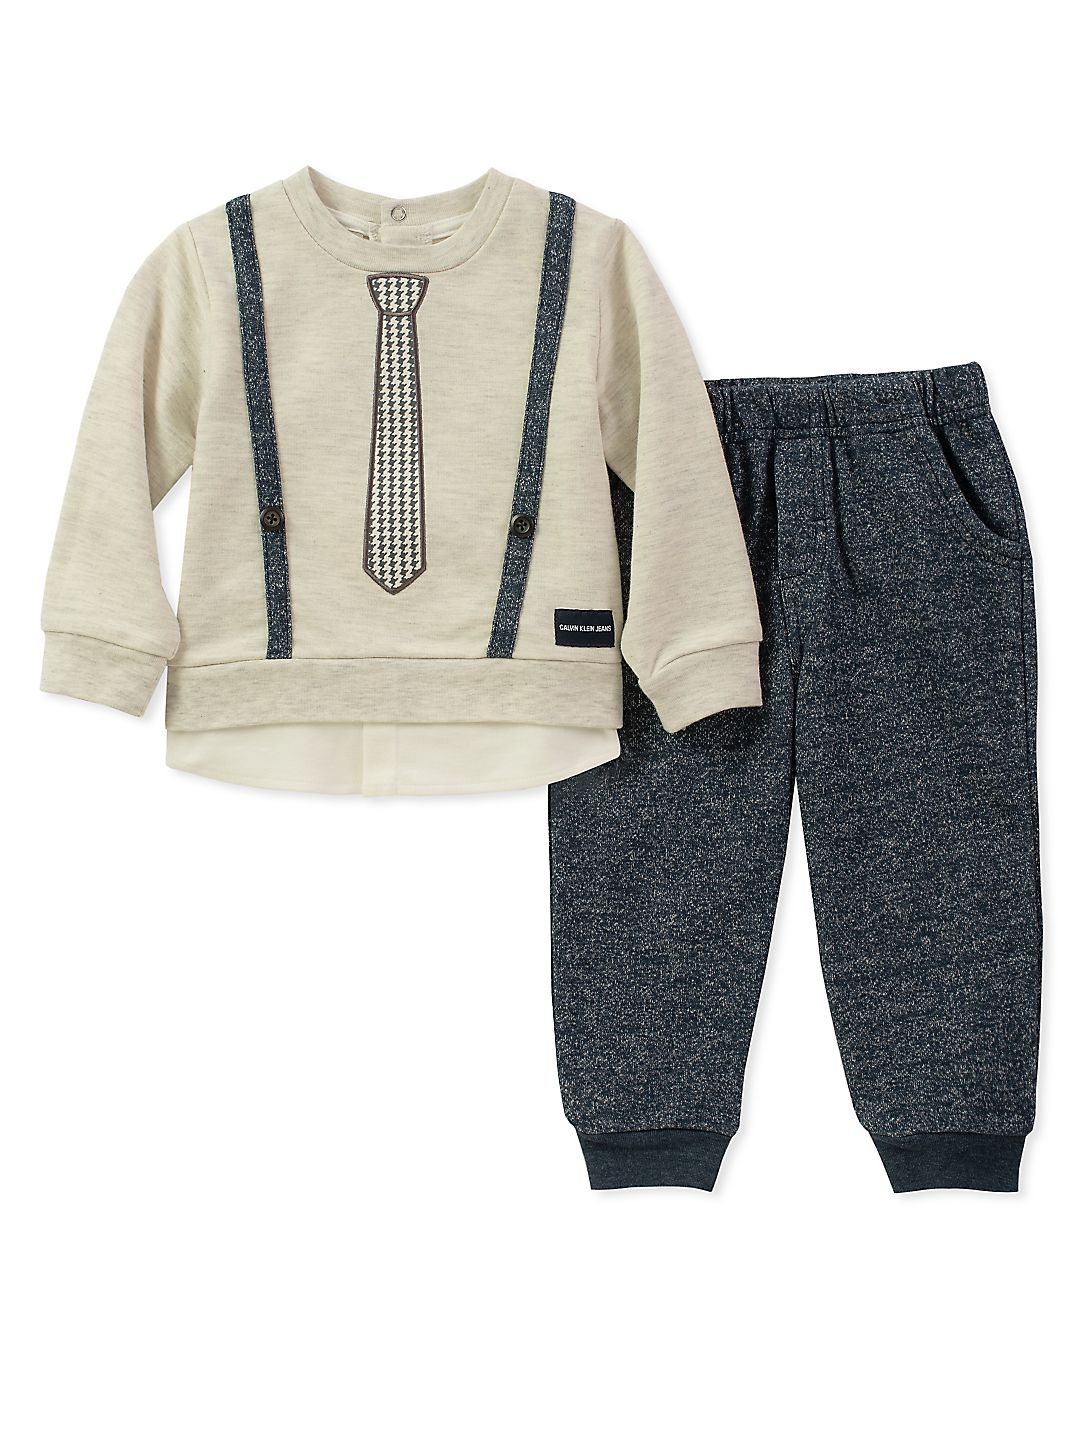 Baby Boy's Two-Piece Formal-Trim Sweater & Pants Set